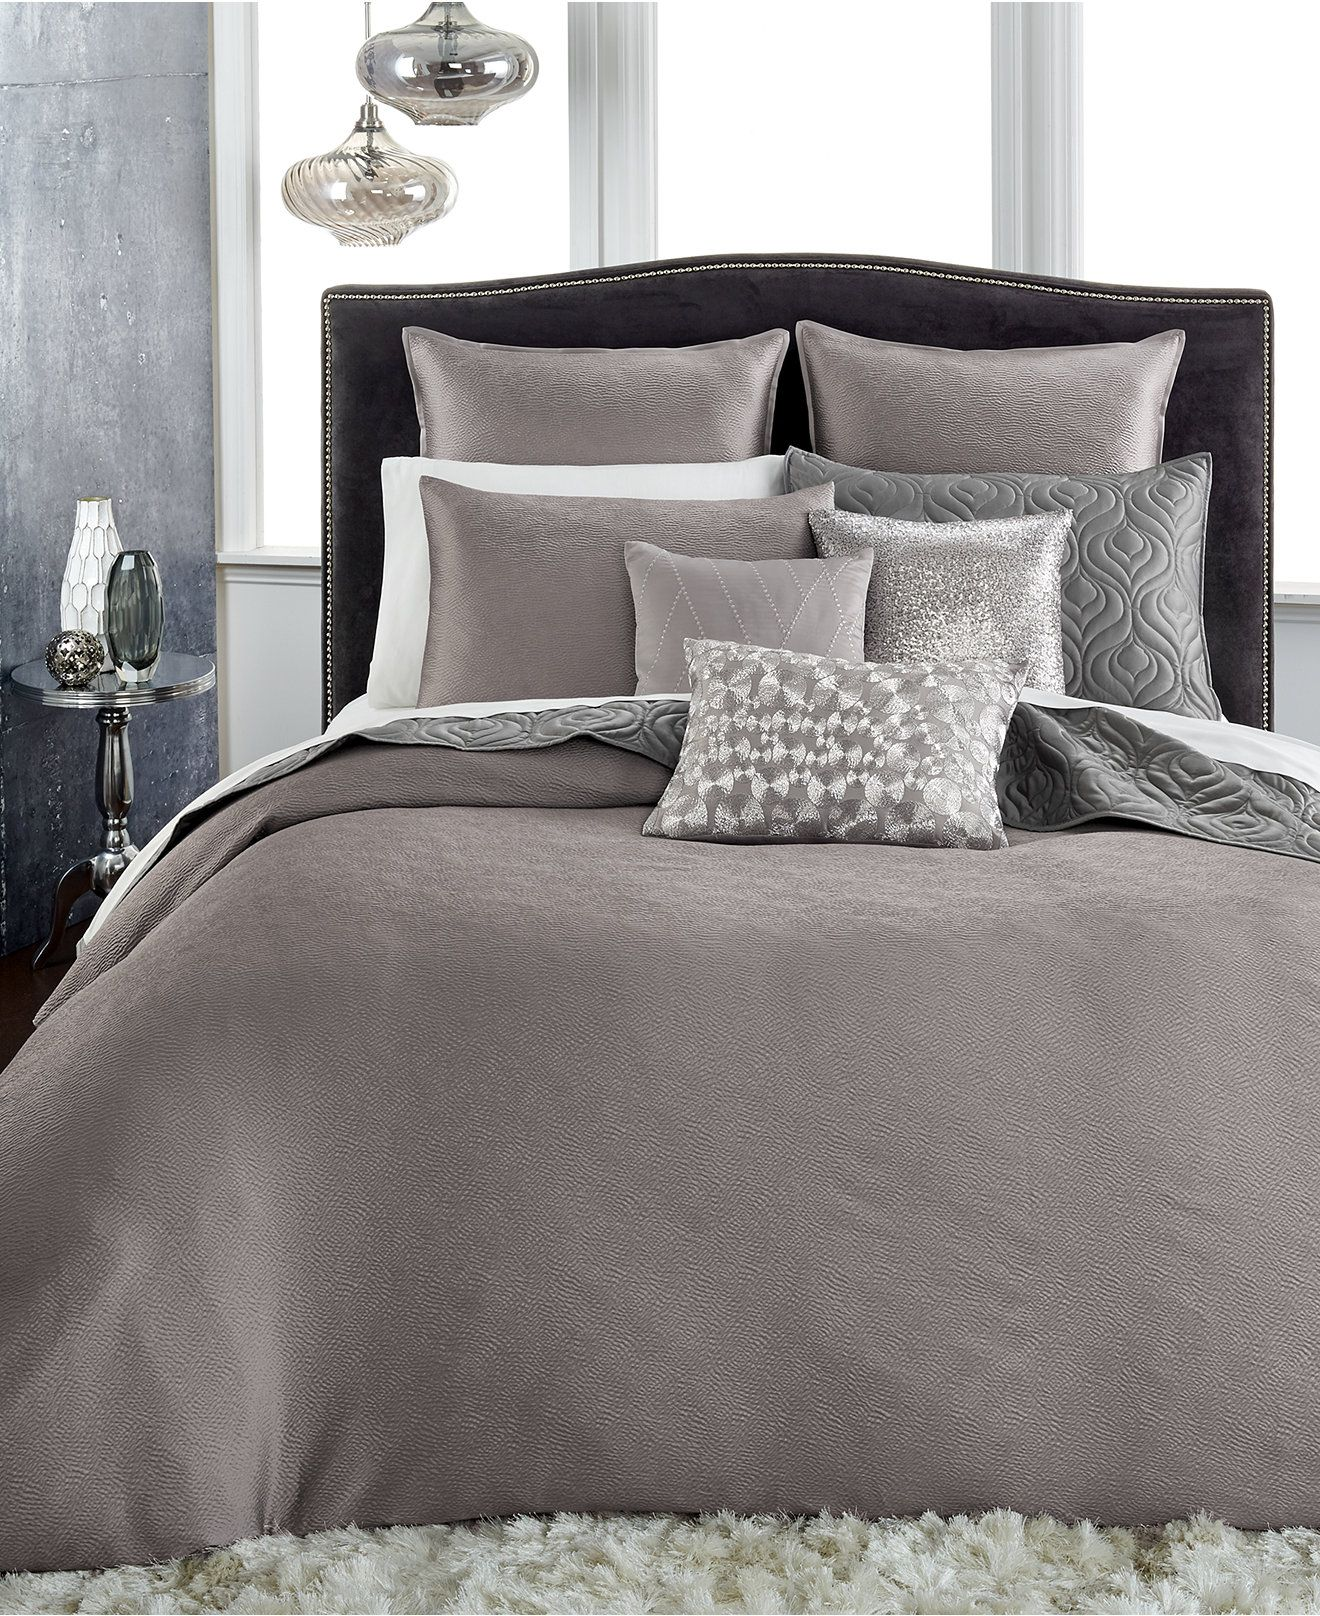 feather duvet goose pacific weight coast magnificent summer best costco set macys comforter down cozy bedroom for winter th decoration ideas comforters insert